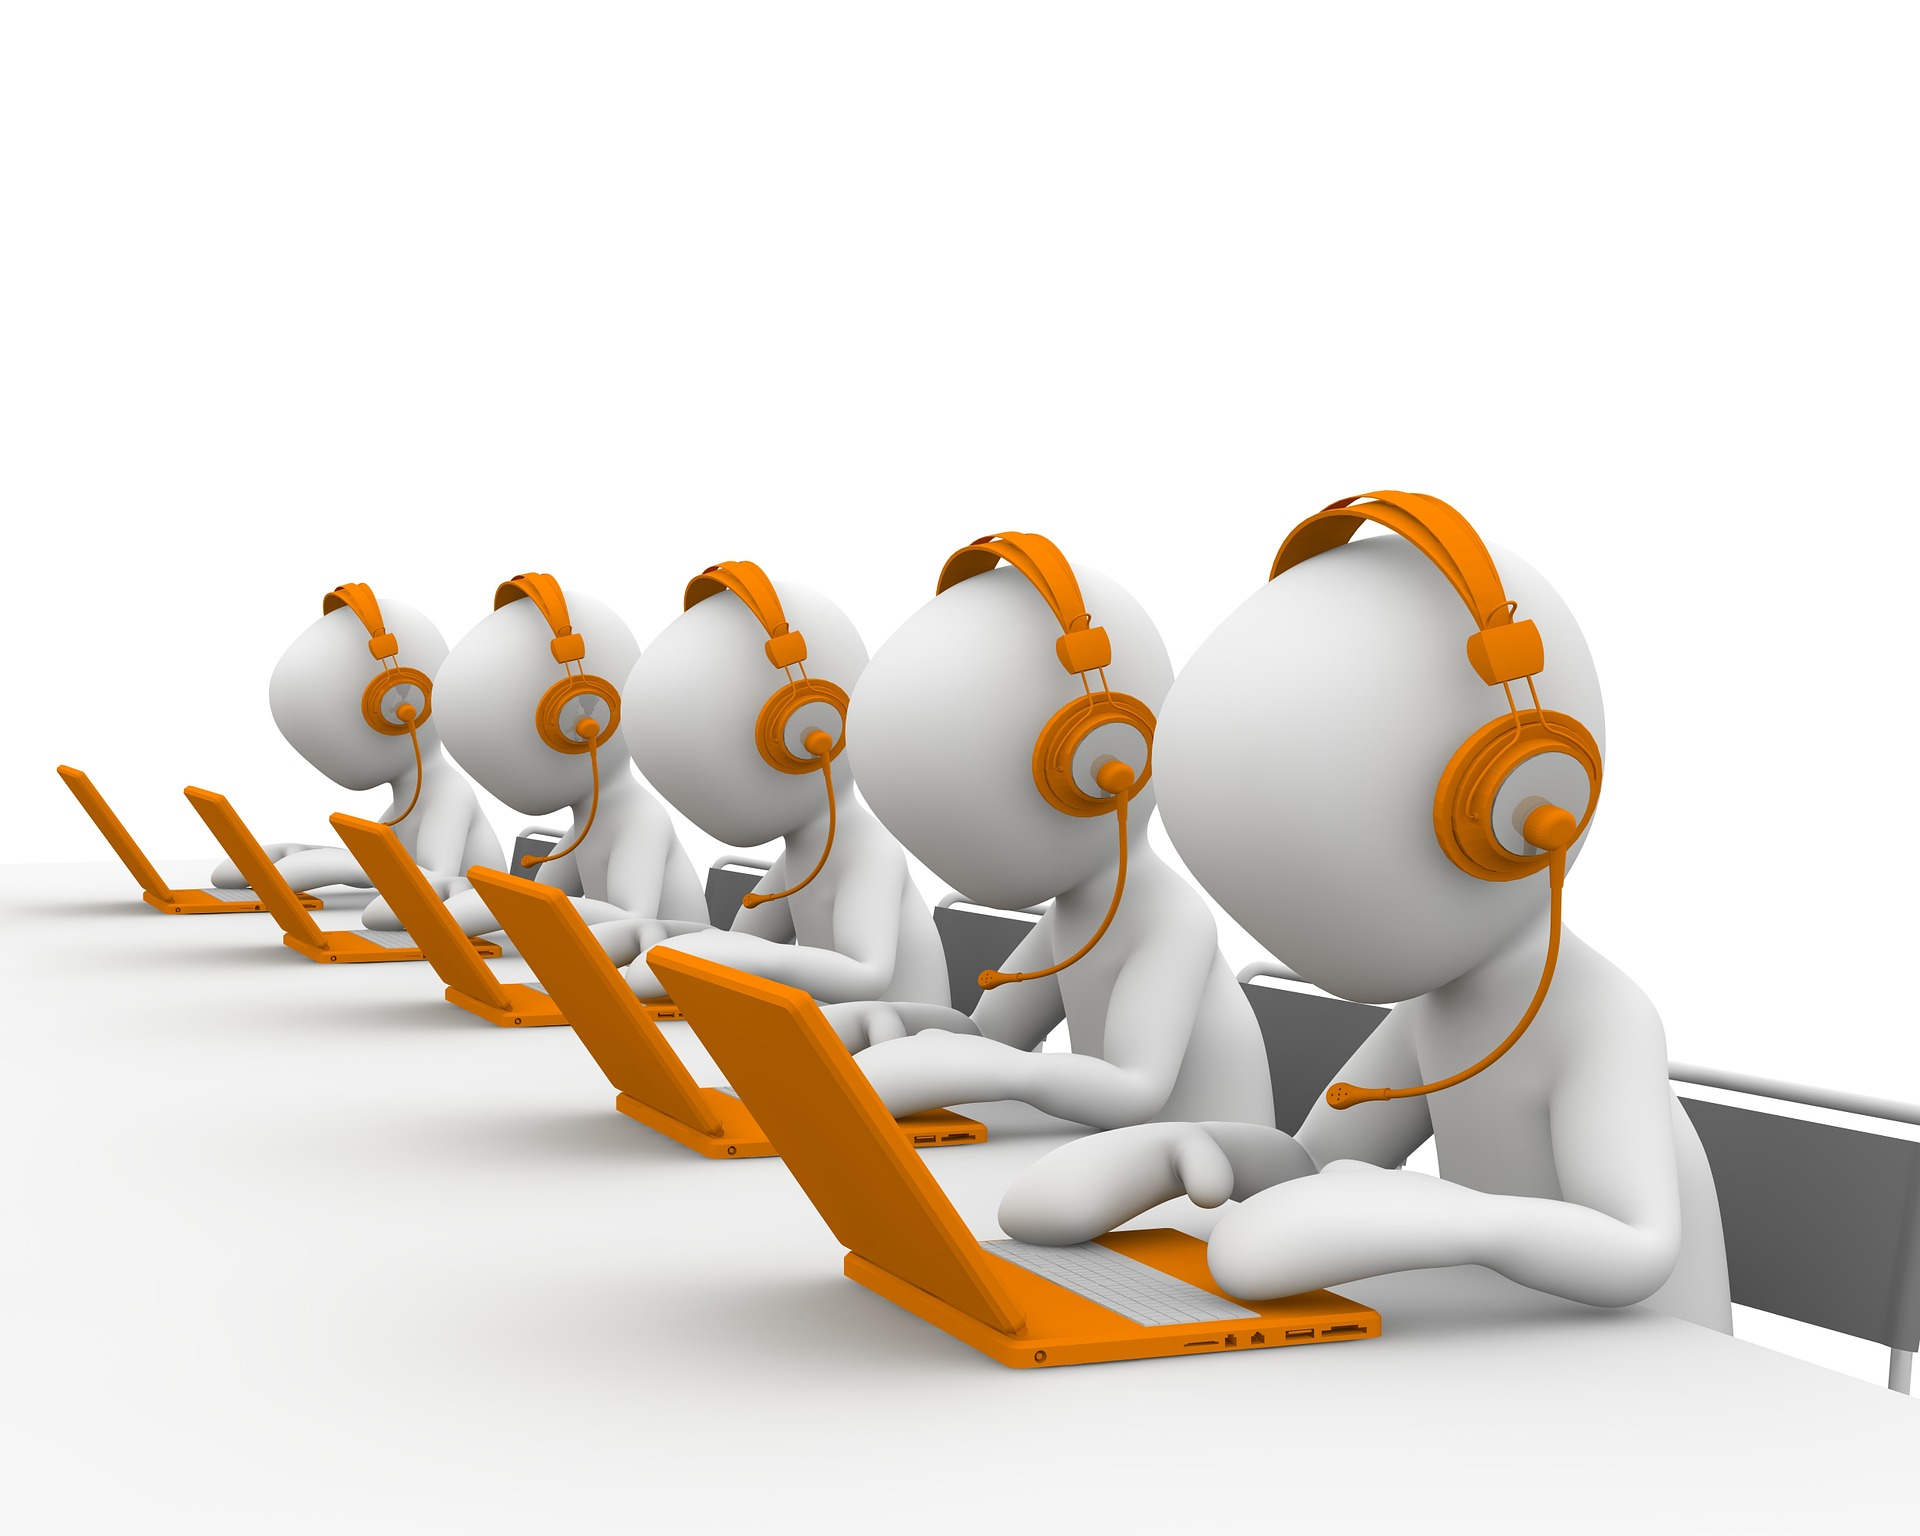 205-350-5139 Telephone Calls  Have You Received One?